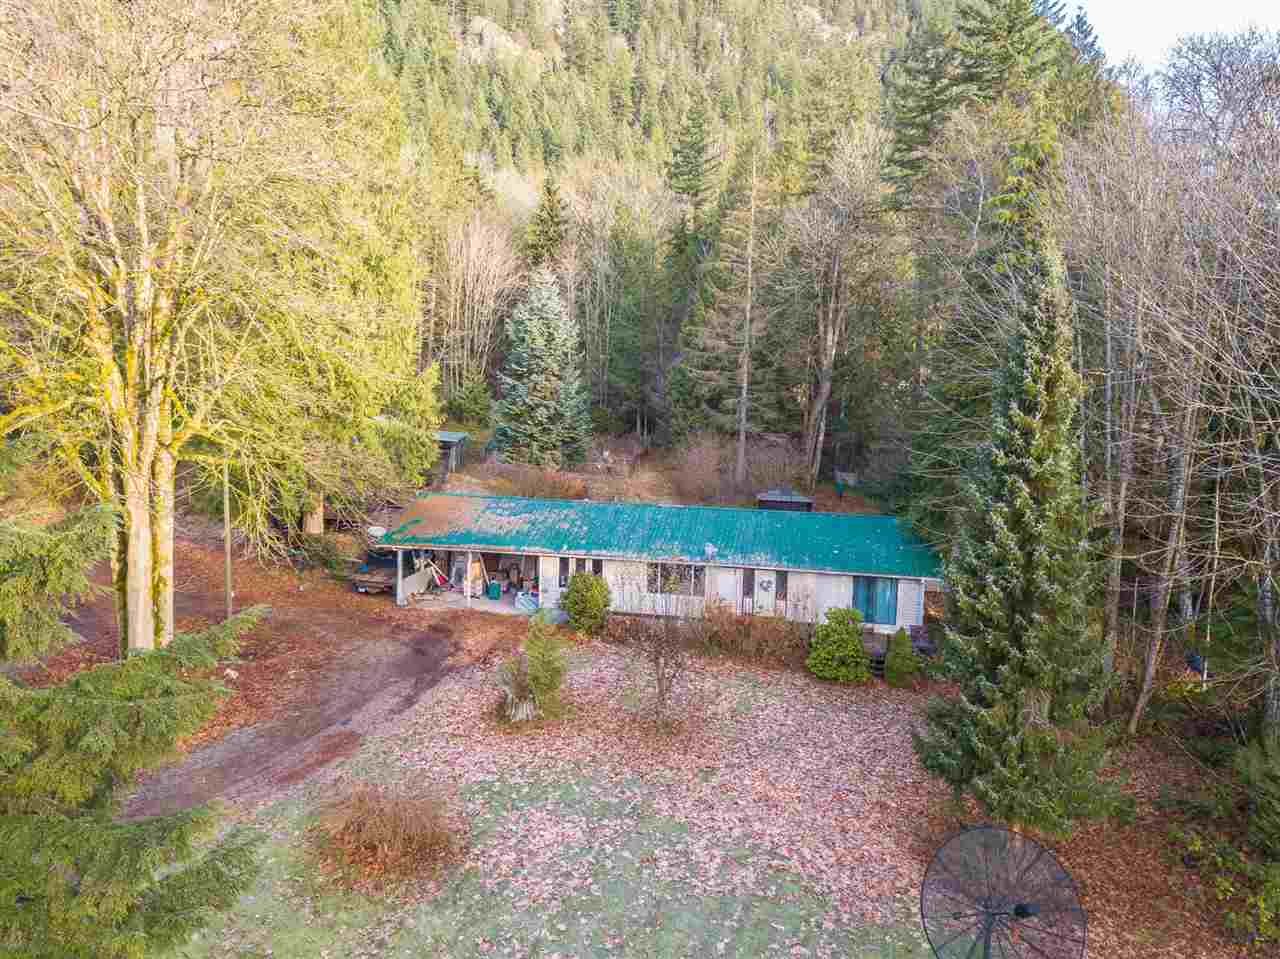 10 Acres of PRIVATE pristine beauty 20 mins East of Mission.  4 bdrm clean and airy open concept rancher surrounded by mountains and fruit trees. Walk your acreage to enjoy Gerard Creek and Waterfall. Sit back and listen to the birds in your gazebo, or drive a short distance to play golf. Endless opportunities for the avid recreationalist. Huge fenced backyard for the kids. Bring the in-laws, bring your pets, bring your toys. Garden and Greenhouse. Dog Kennels & Runs, Chicken Coop with Storage Shed, Covered Woodshed. If unique privacy in a beautiful setting is what you are looking for...search it, see it, love it!